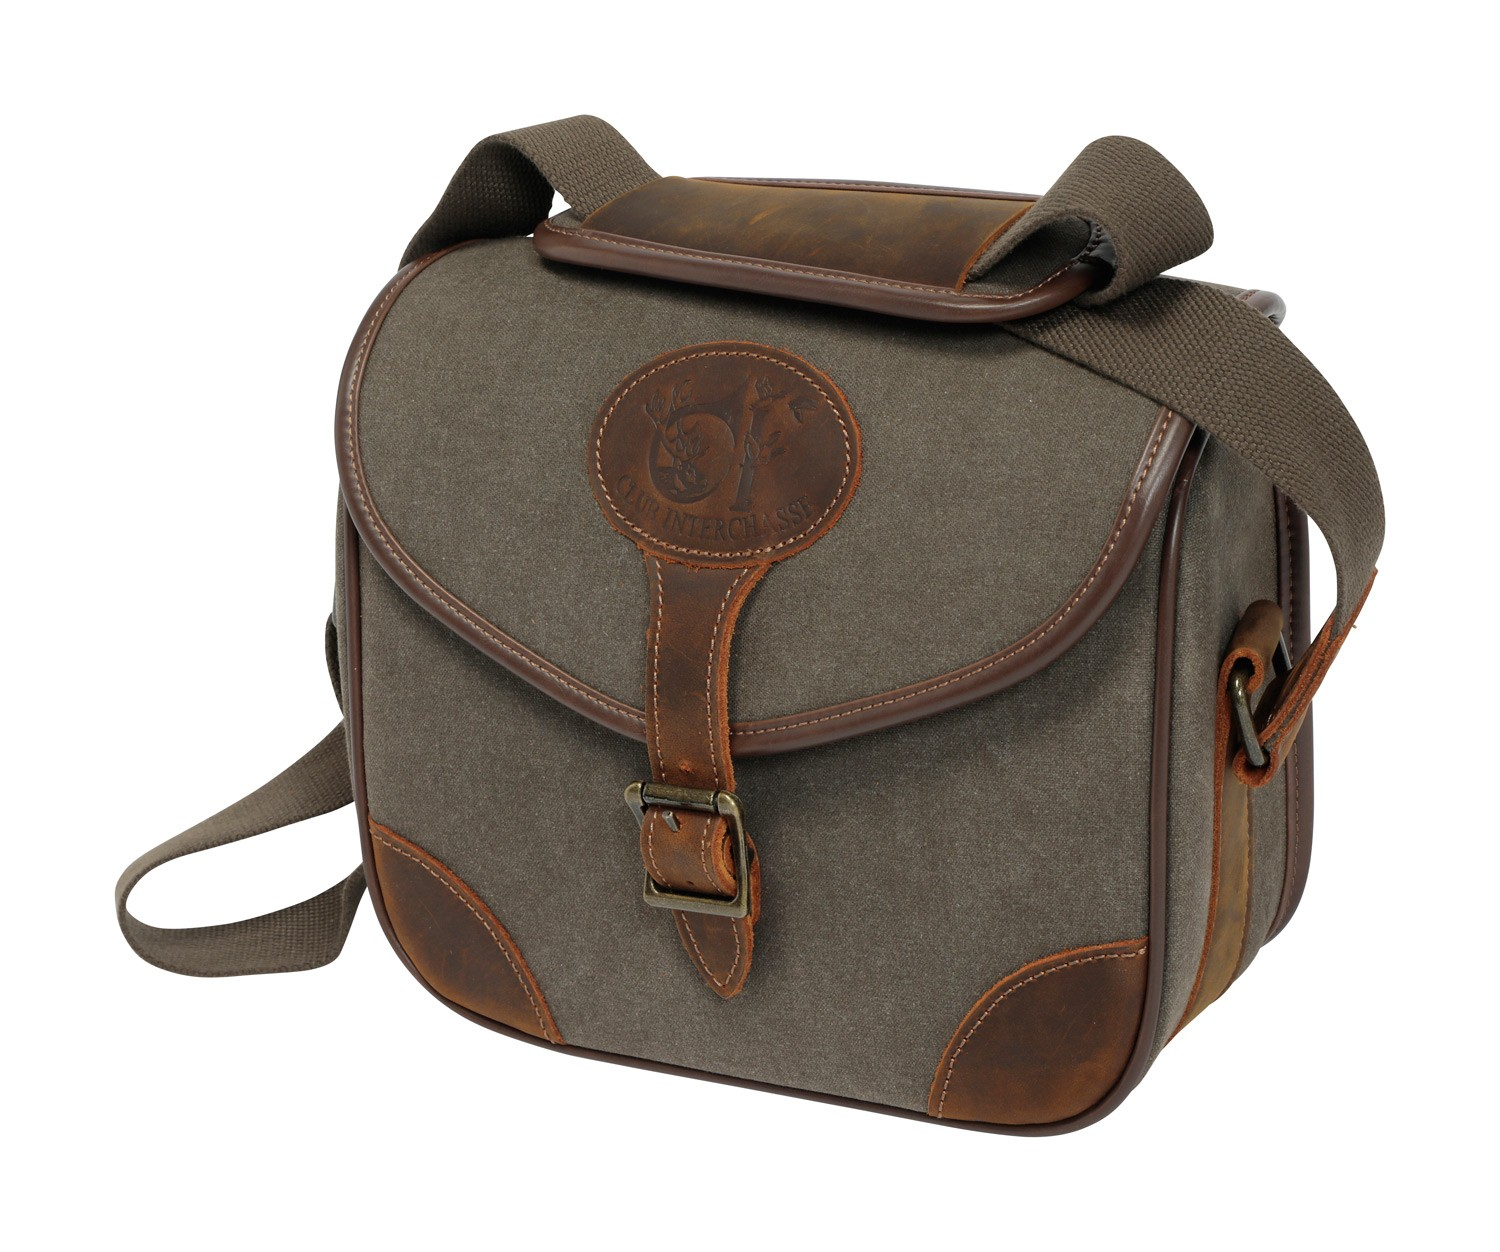 Sac à cartouches club interchasse apollon, made in chasse...